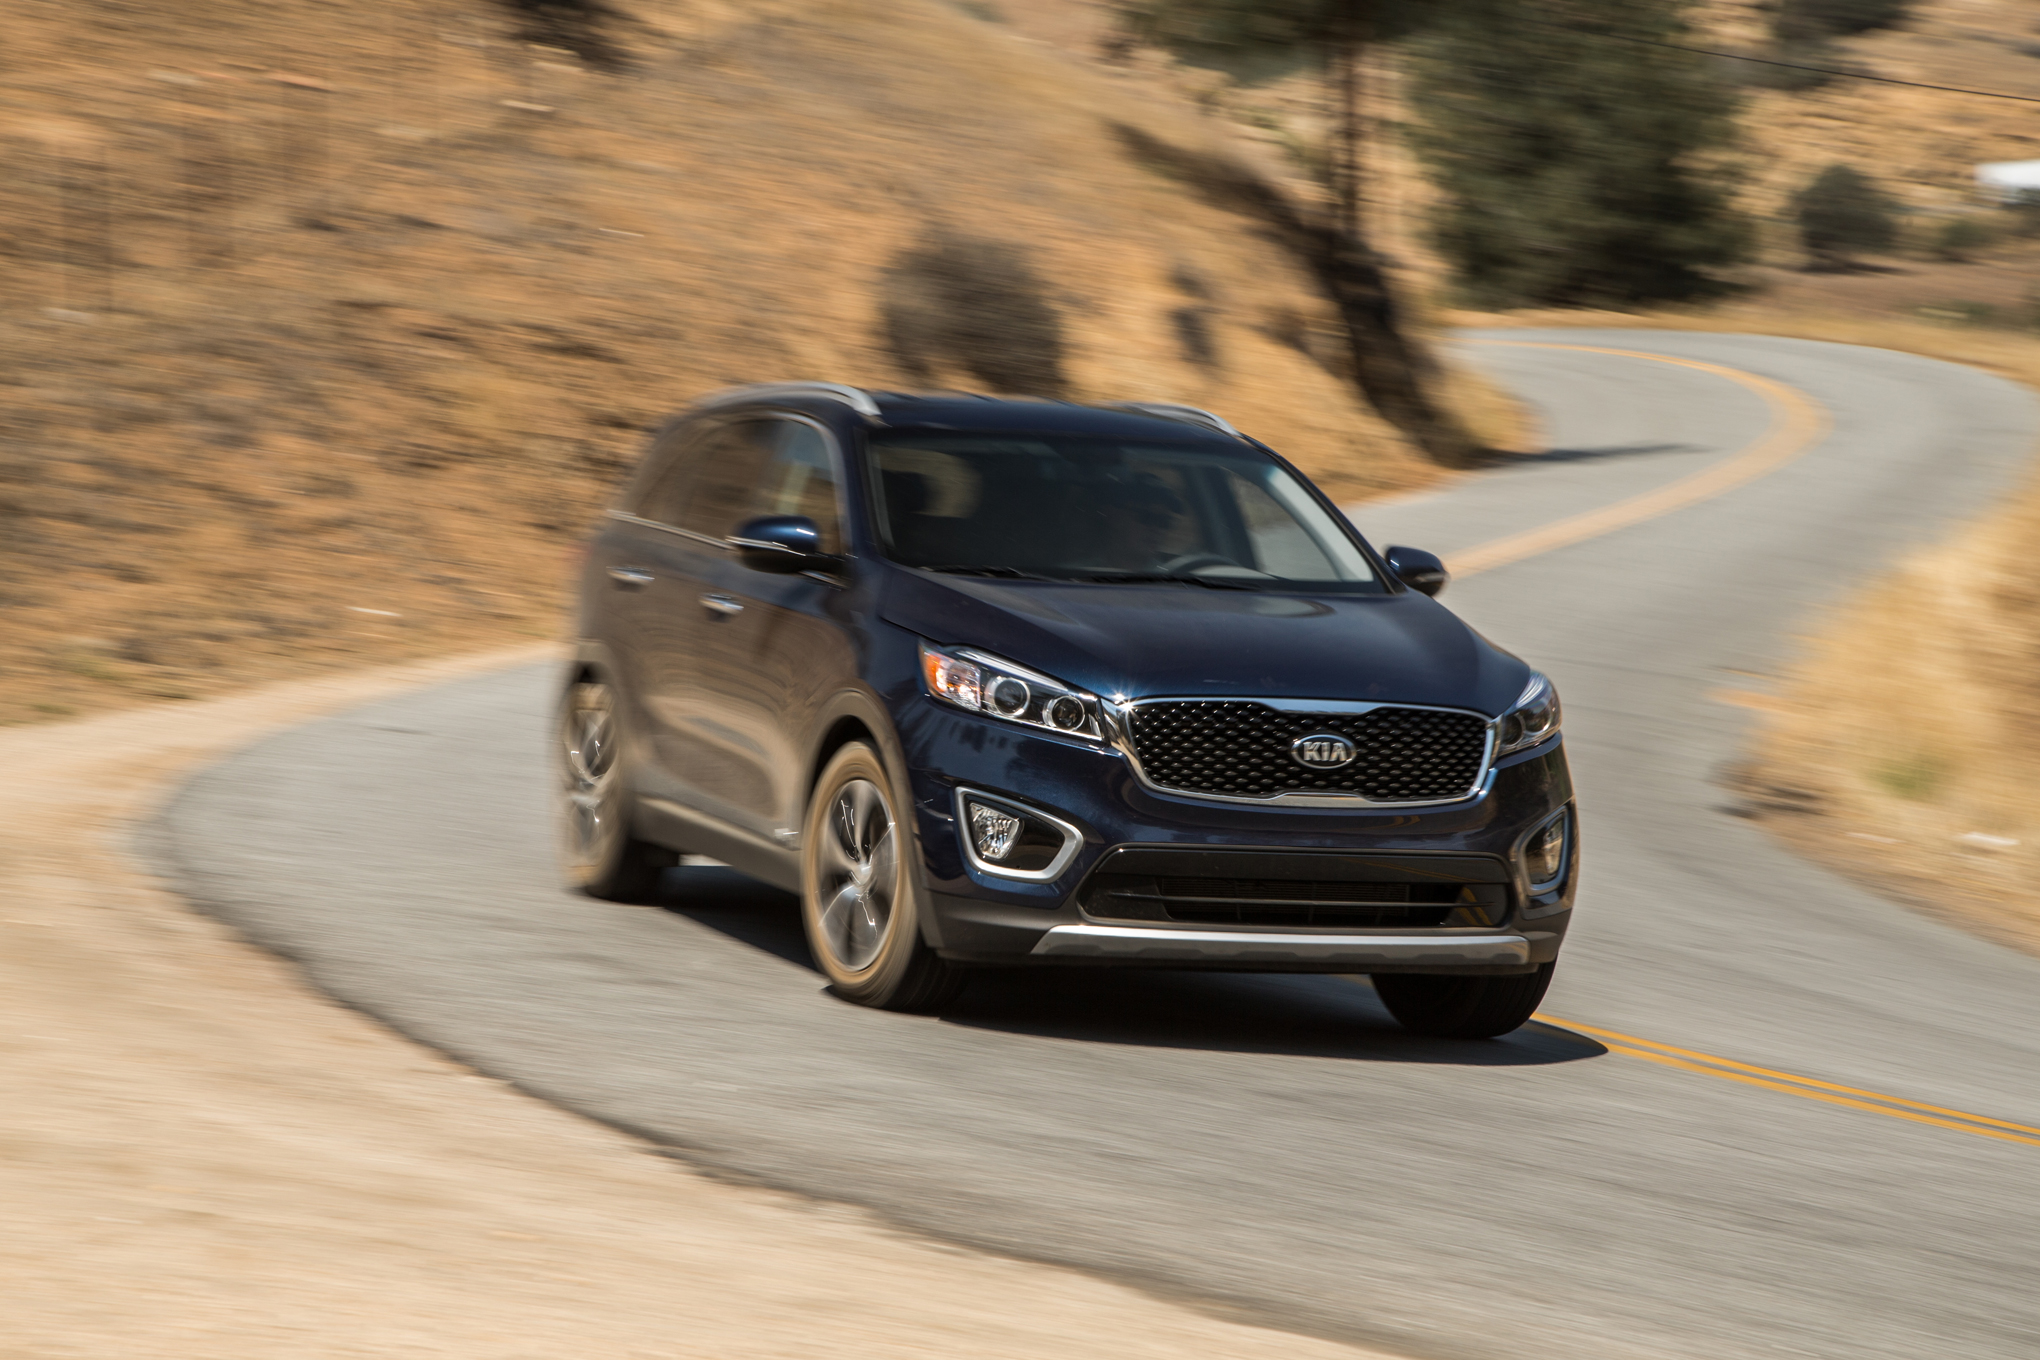 The 2016 Kia Sorento EX AWD V-6